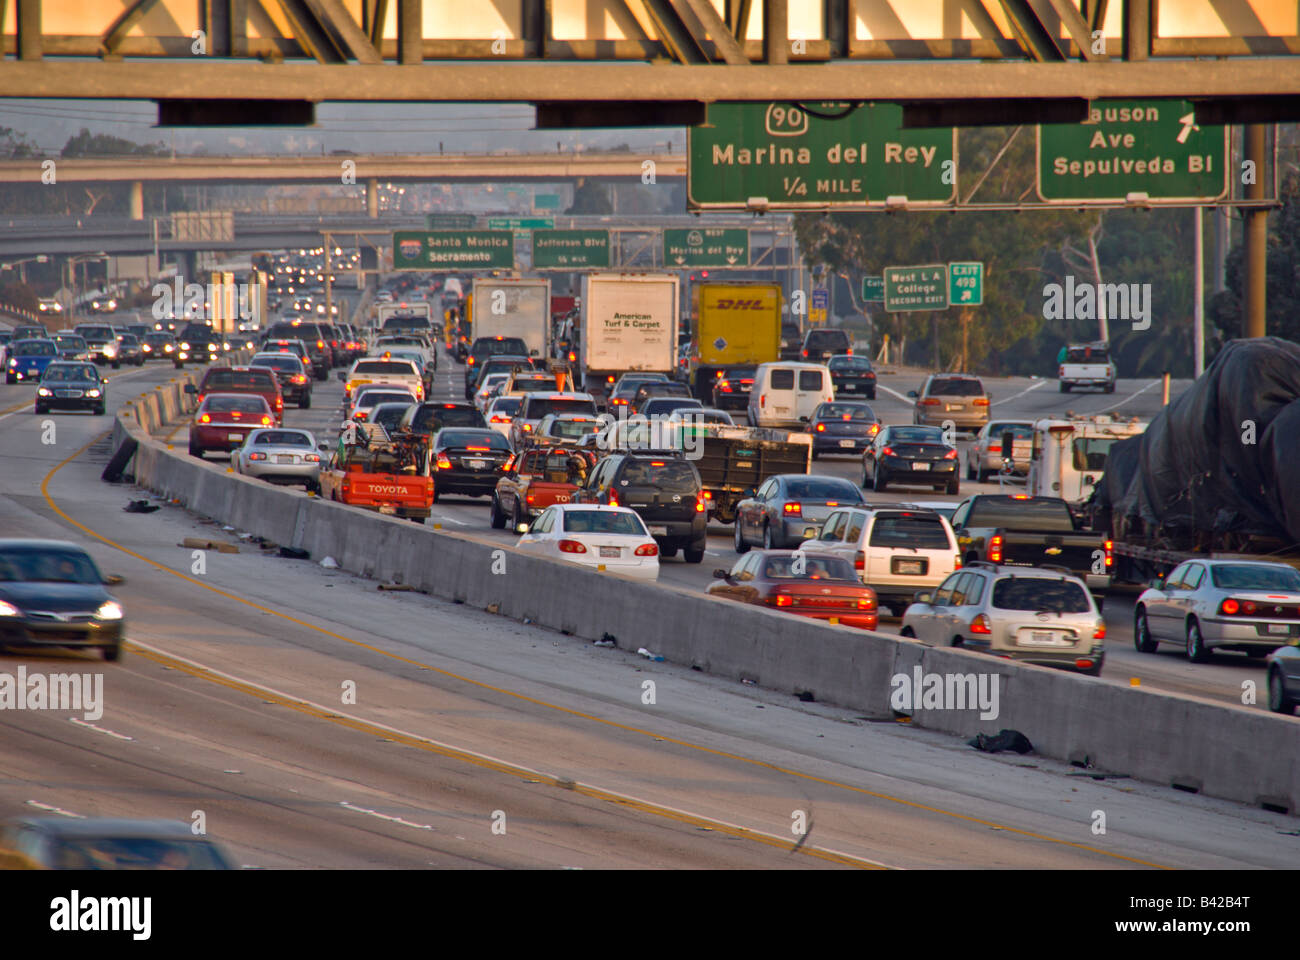 405 freeway I-405 Los Angeles CA, California highway signs bumper to bumper traffic, Stock Photo